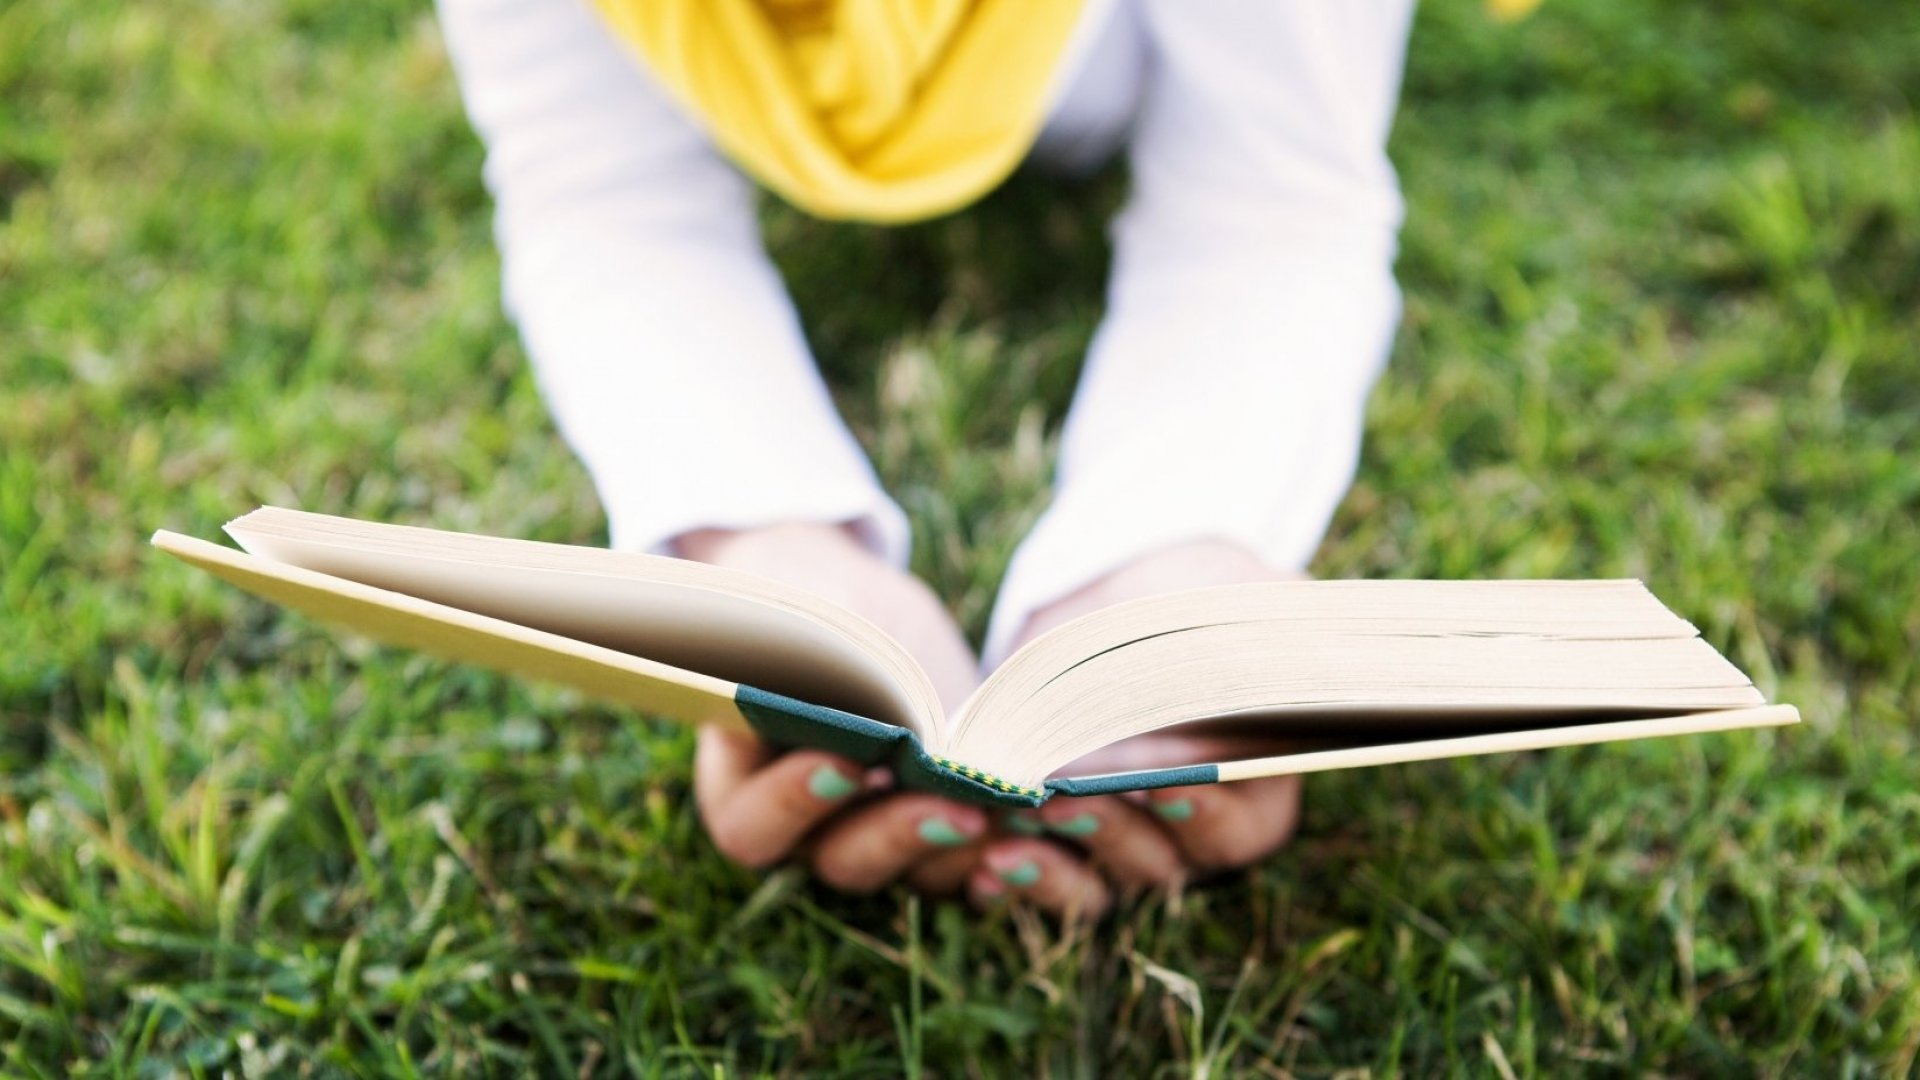 11 Books to Stay Stimulated Over Summer